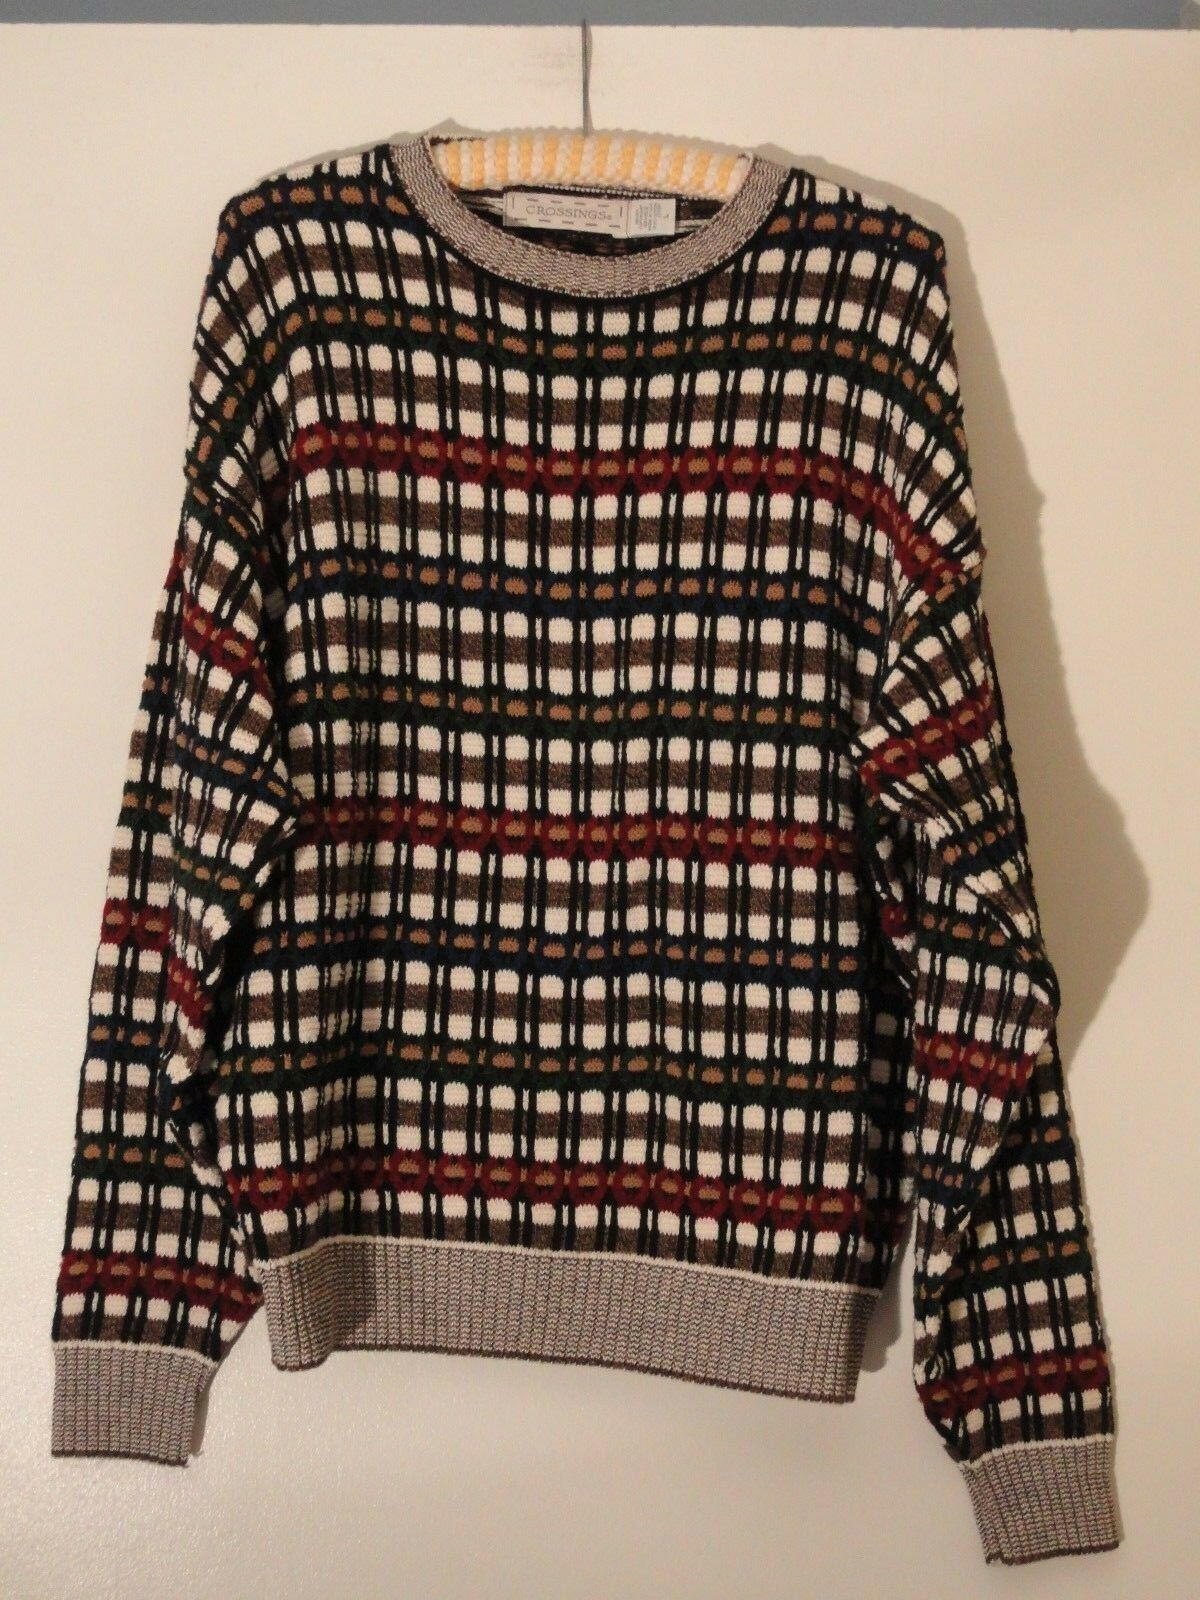 Crossings NEW Sweater Mens L 100% Cotton USA Taupe bluee Red Ivory Plaid NWOT LG